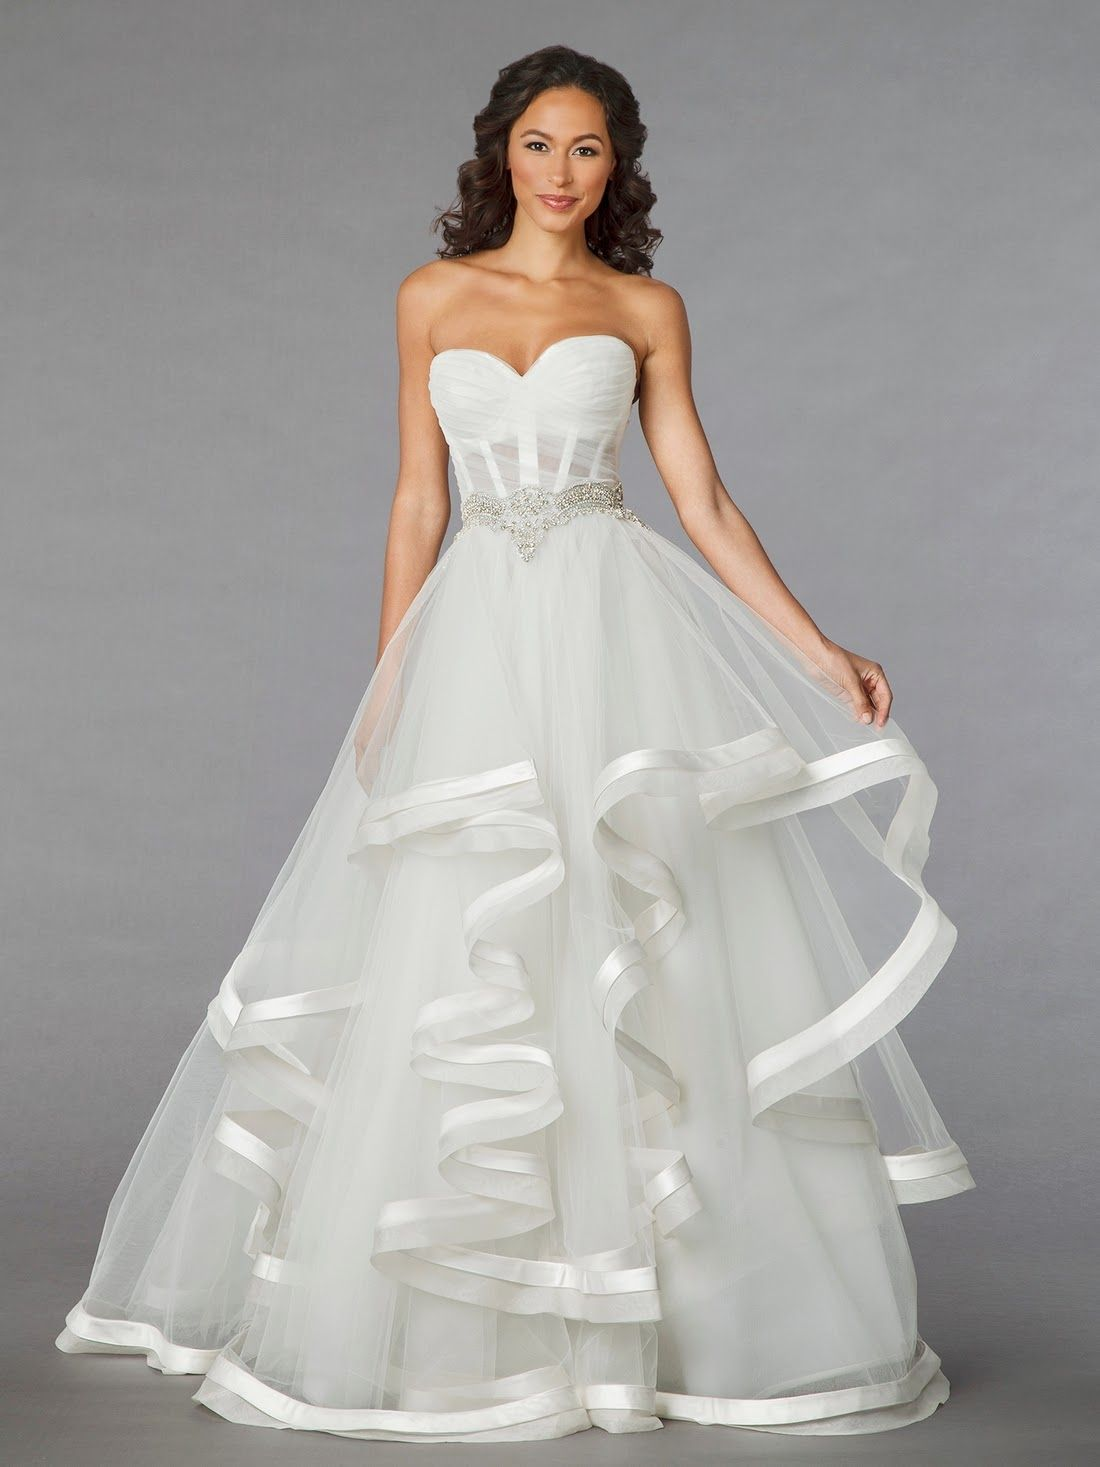 Pearl belt for wedding dress  Thanks to  WhimsyBride  for featuring this gown with satin and